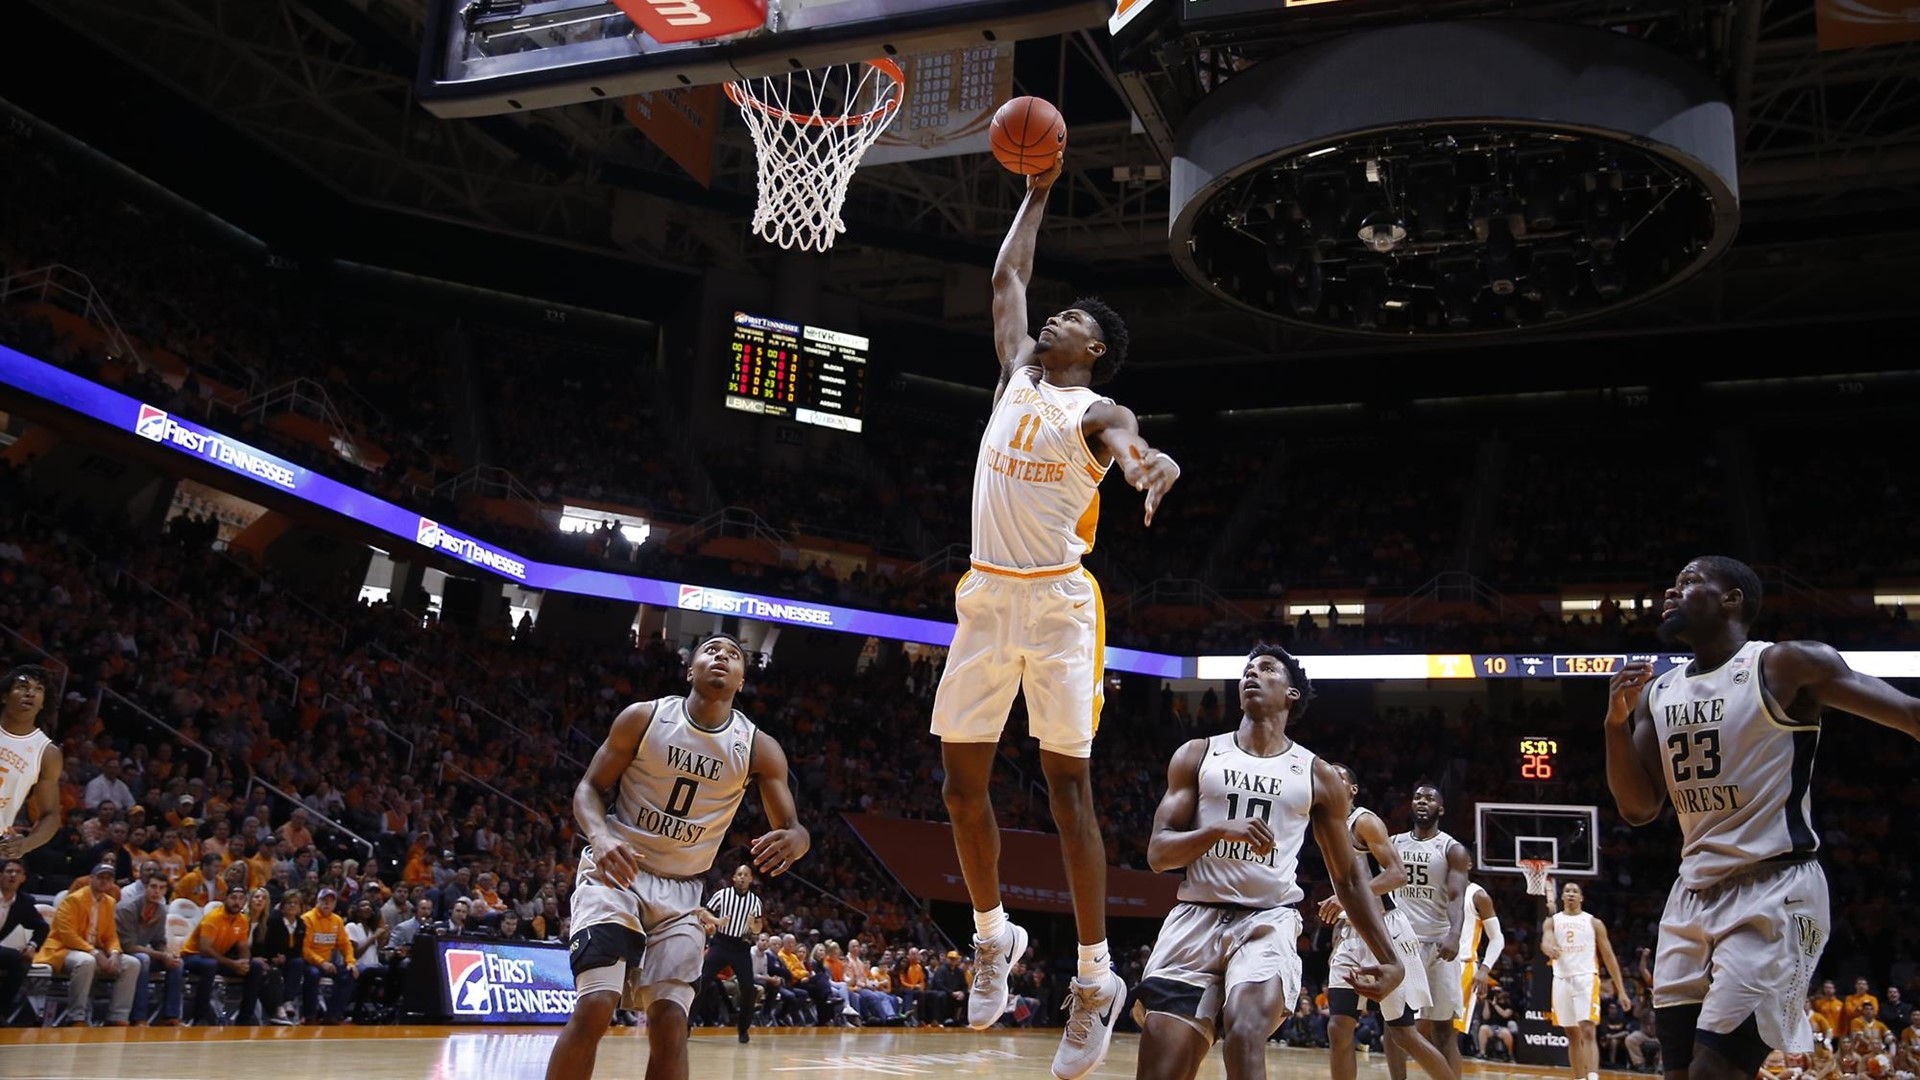 university of tennessee athletics official athletics website